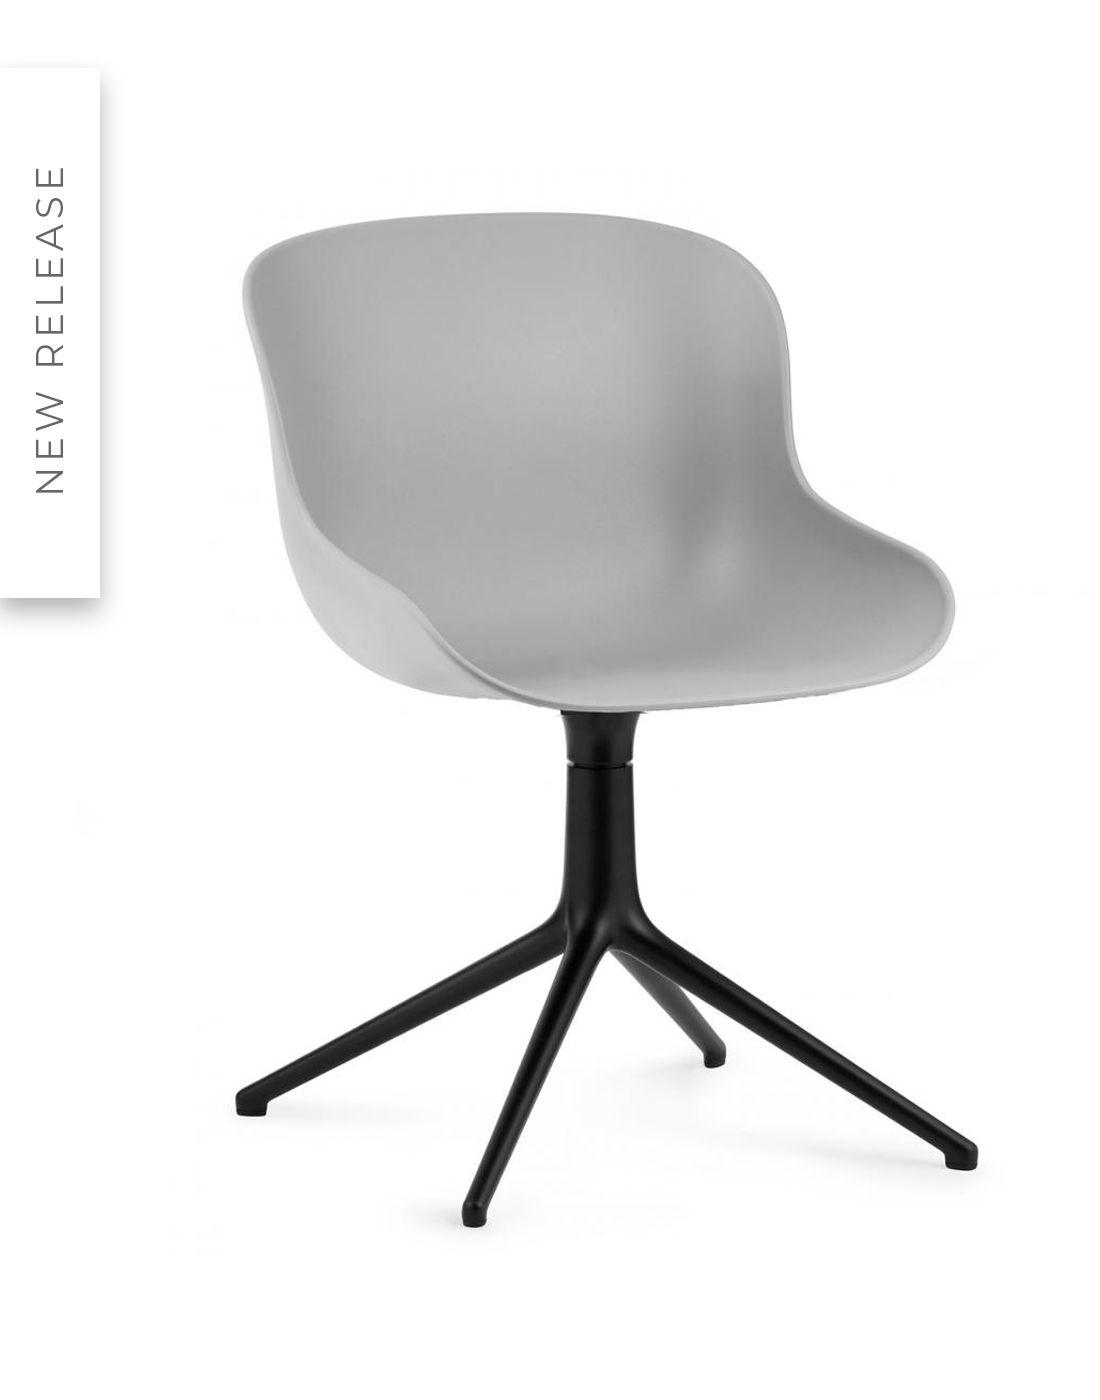 Hyg swivel chair 4L by Normann Copenhagen